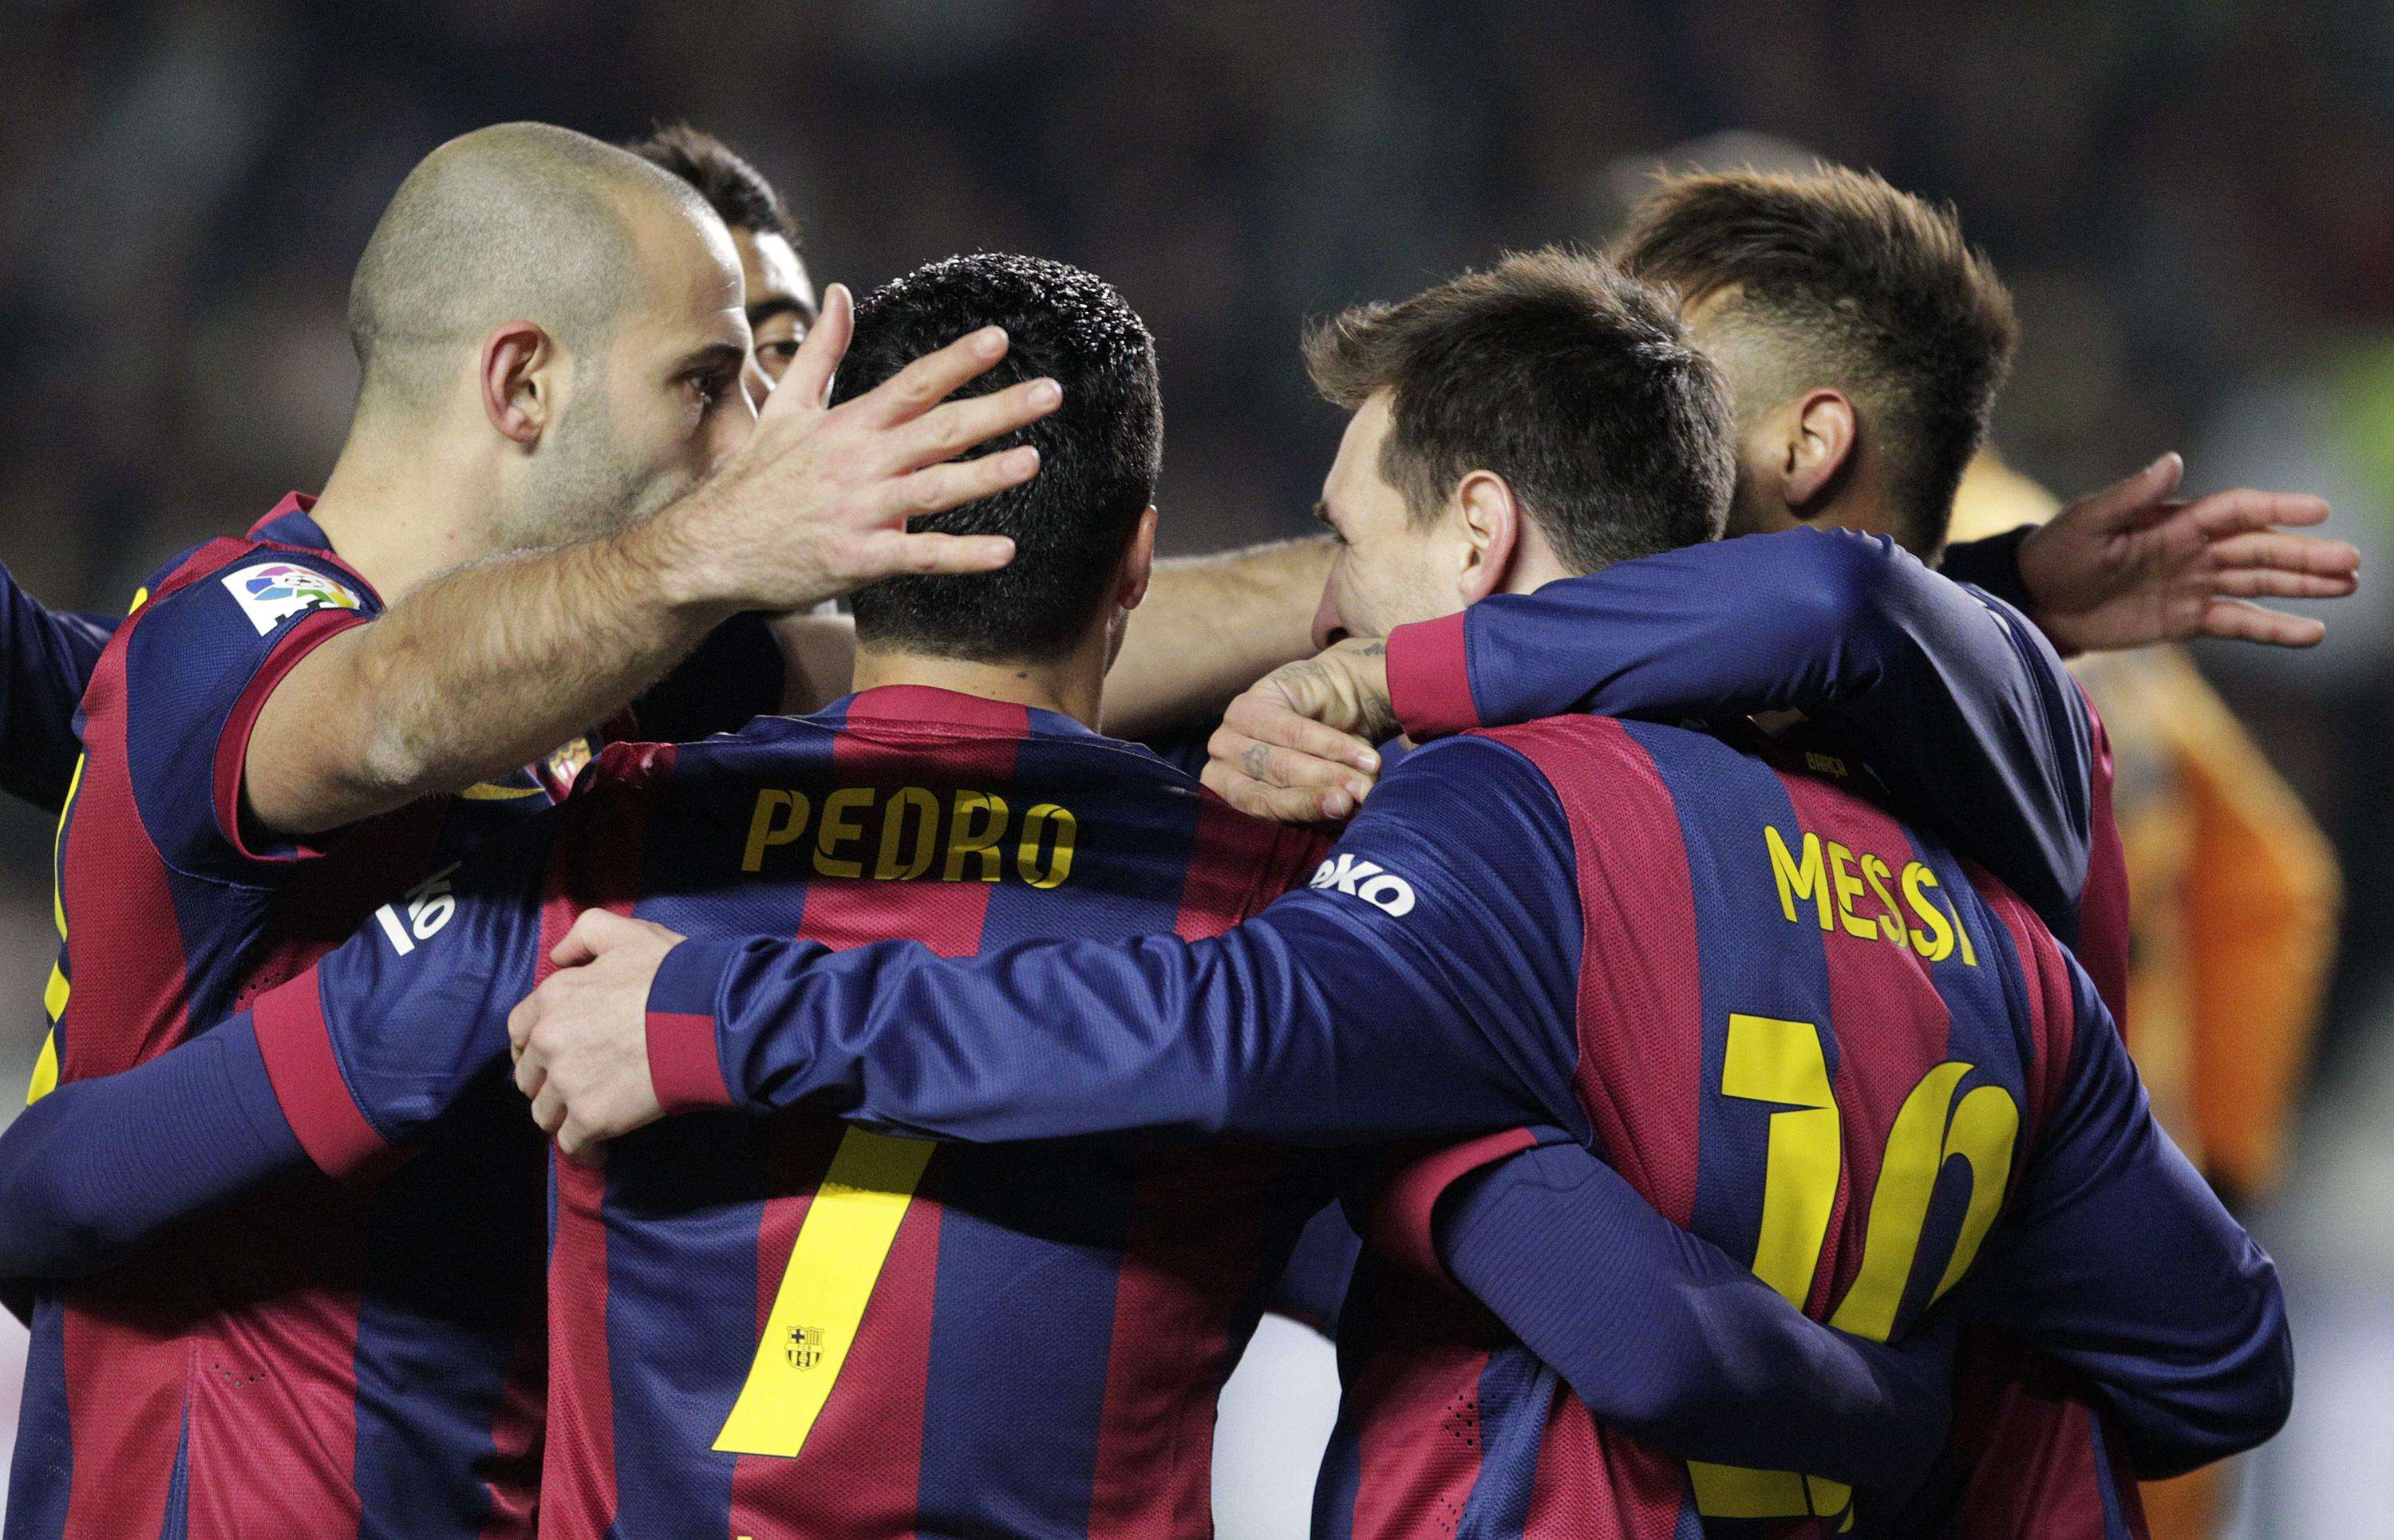 Barcelona's players celebrate after Lionel Messi (2nd L) scored a penalty against Elche during their Spanish first division soccer match at Martinez Valero stadium in Elche January 24, 2015. REUTERS/Heino Kalis (SPAIN - Tags: SPORT SOCCER) Foto: HEINO KALIS/REUTERS